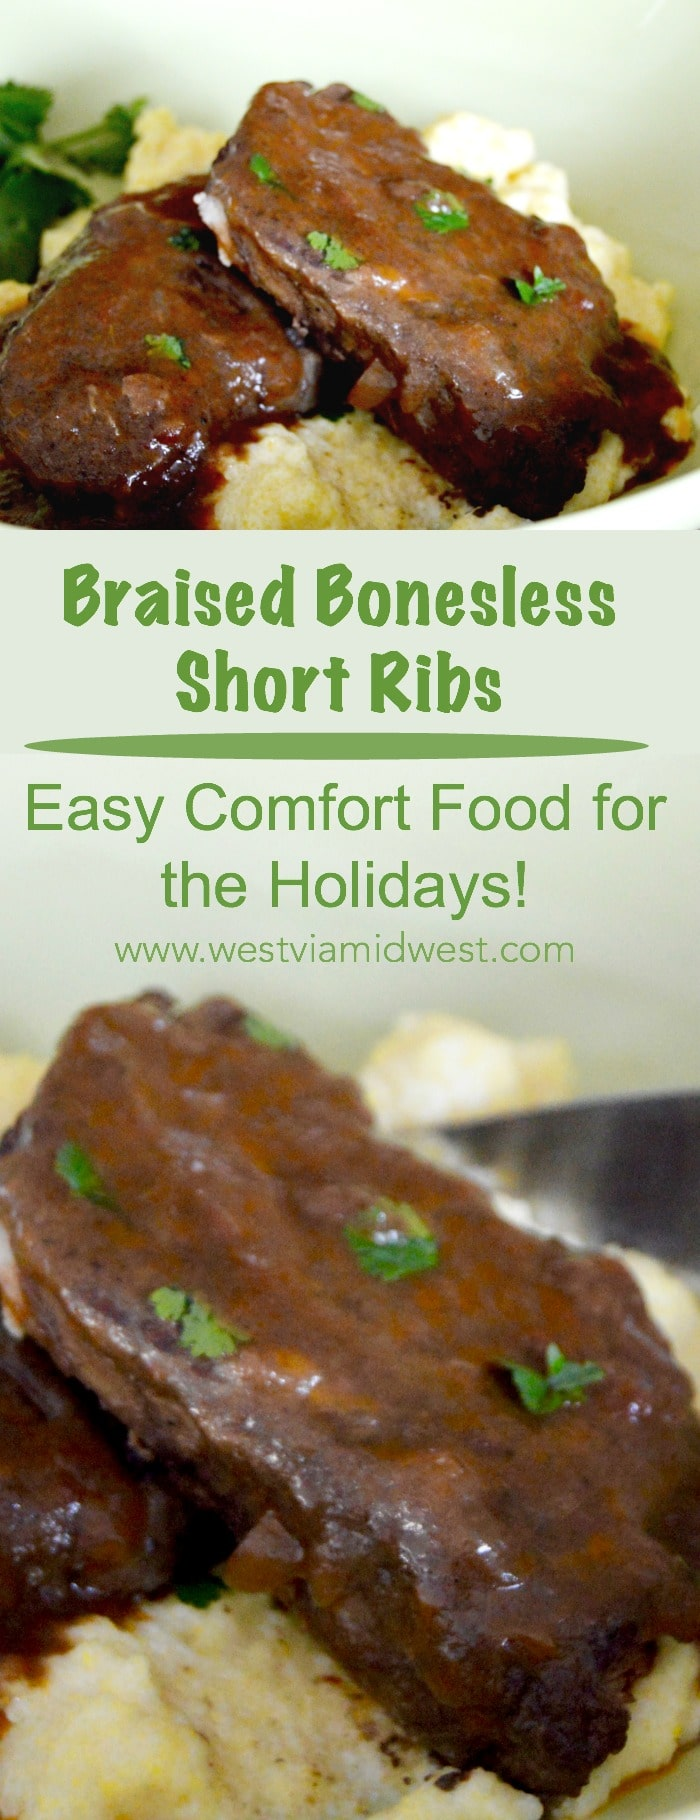 Braised Boneless Short Ribs: fork tender boneless short ribs in a smokey, coffee and wine infused sauce.  Complete comfort food that is ideal for entertaining. #christmas #holiday #entertaining #Comfortfood #bonelessshortribs www.westviamidwest.com